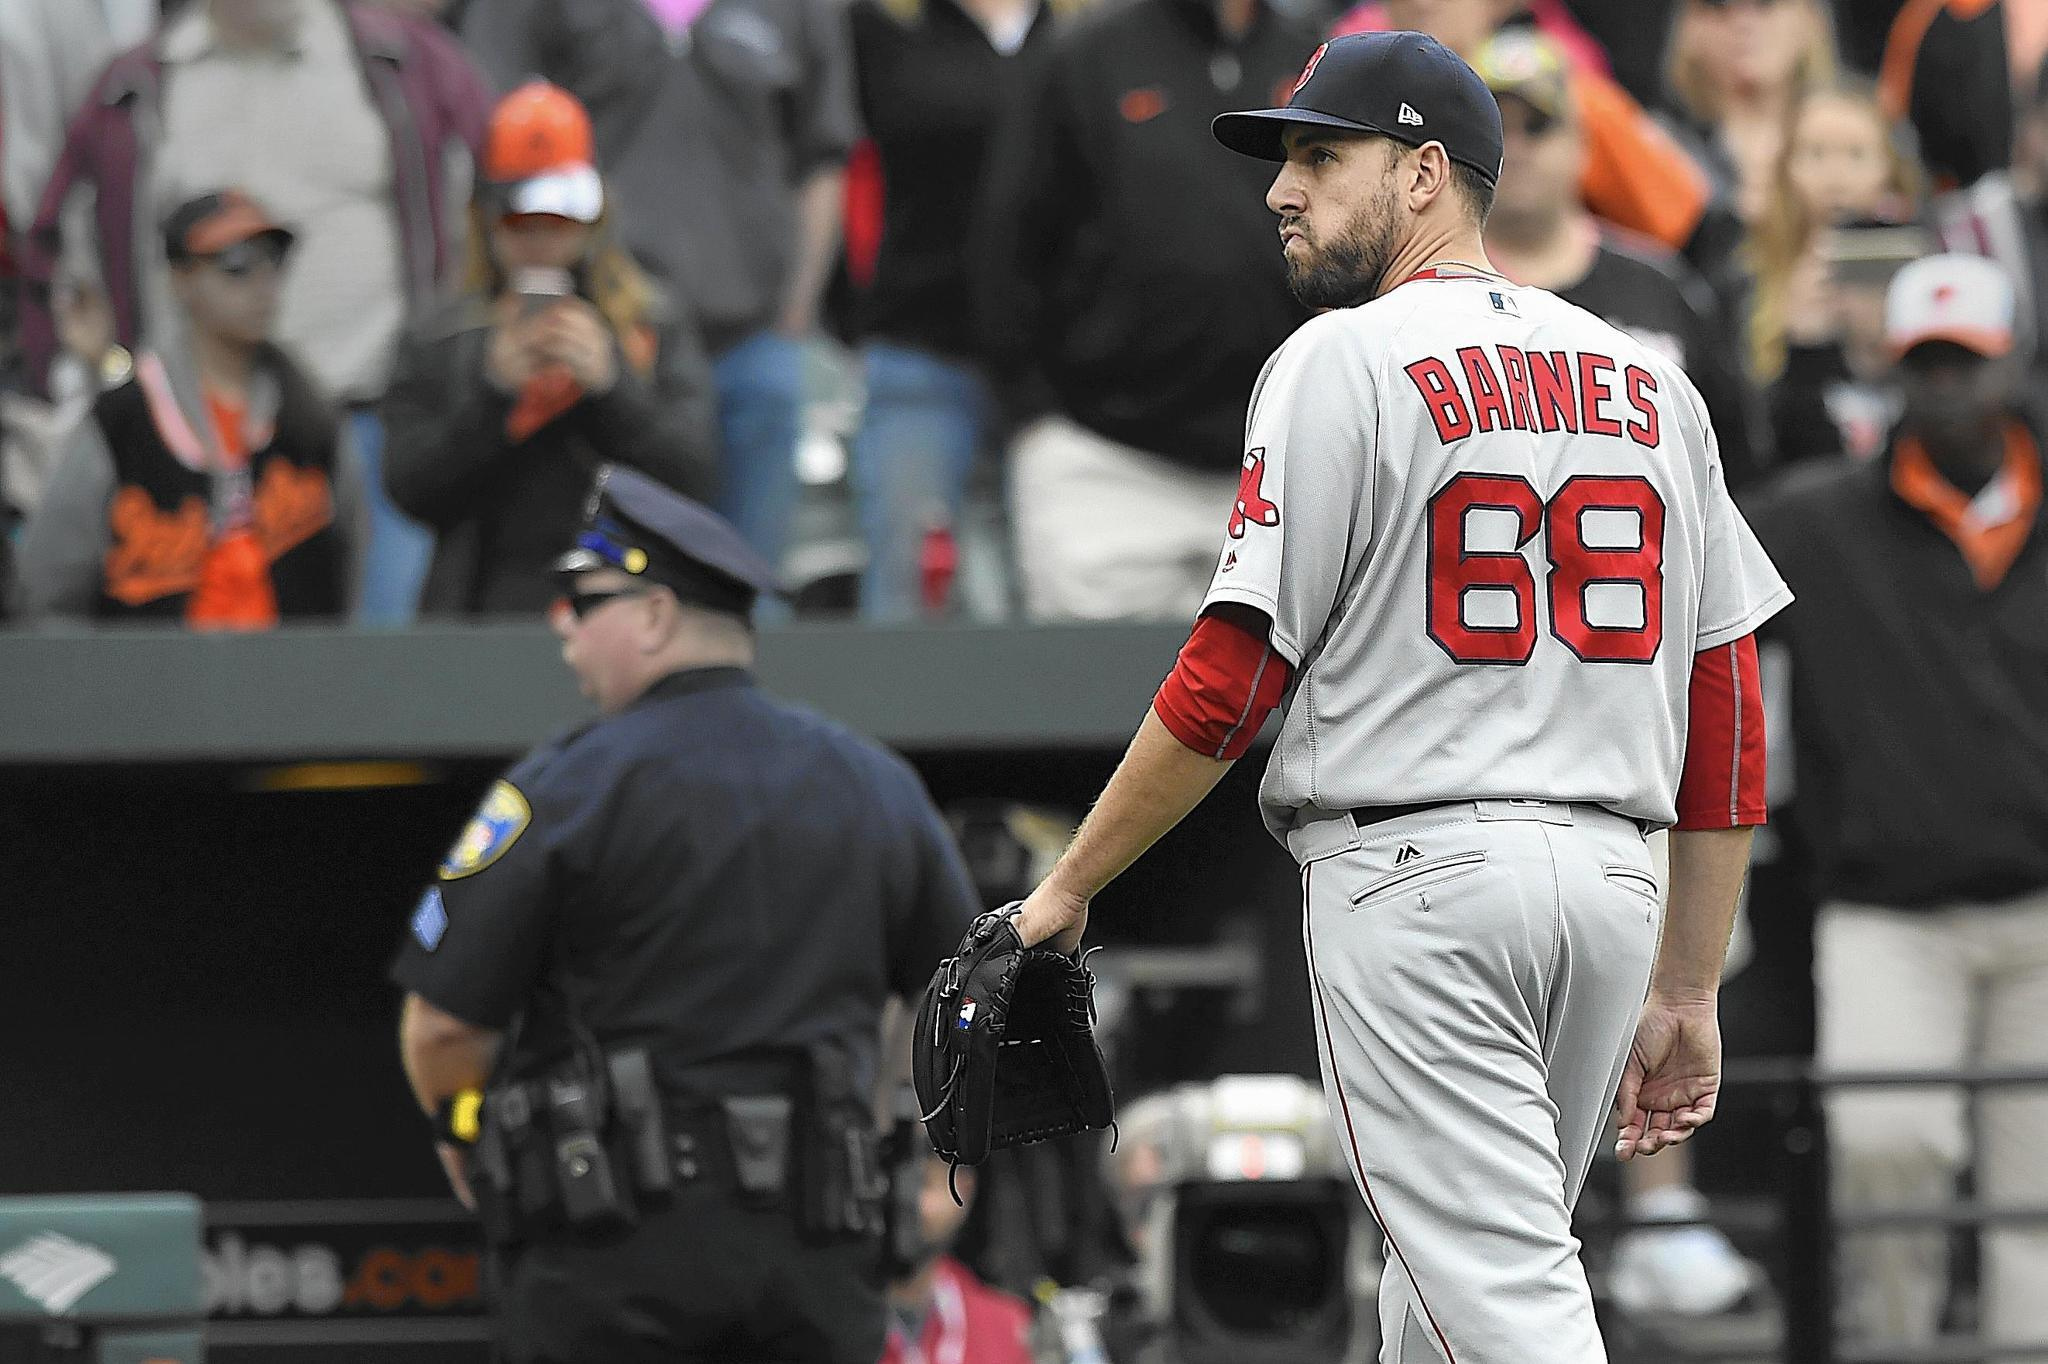 Hc-jacobs-column-pedroia-barnes-red-sox-0426-20170425